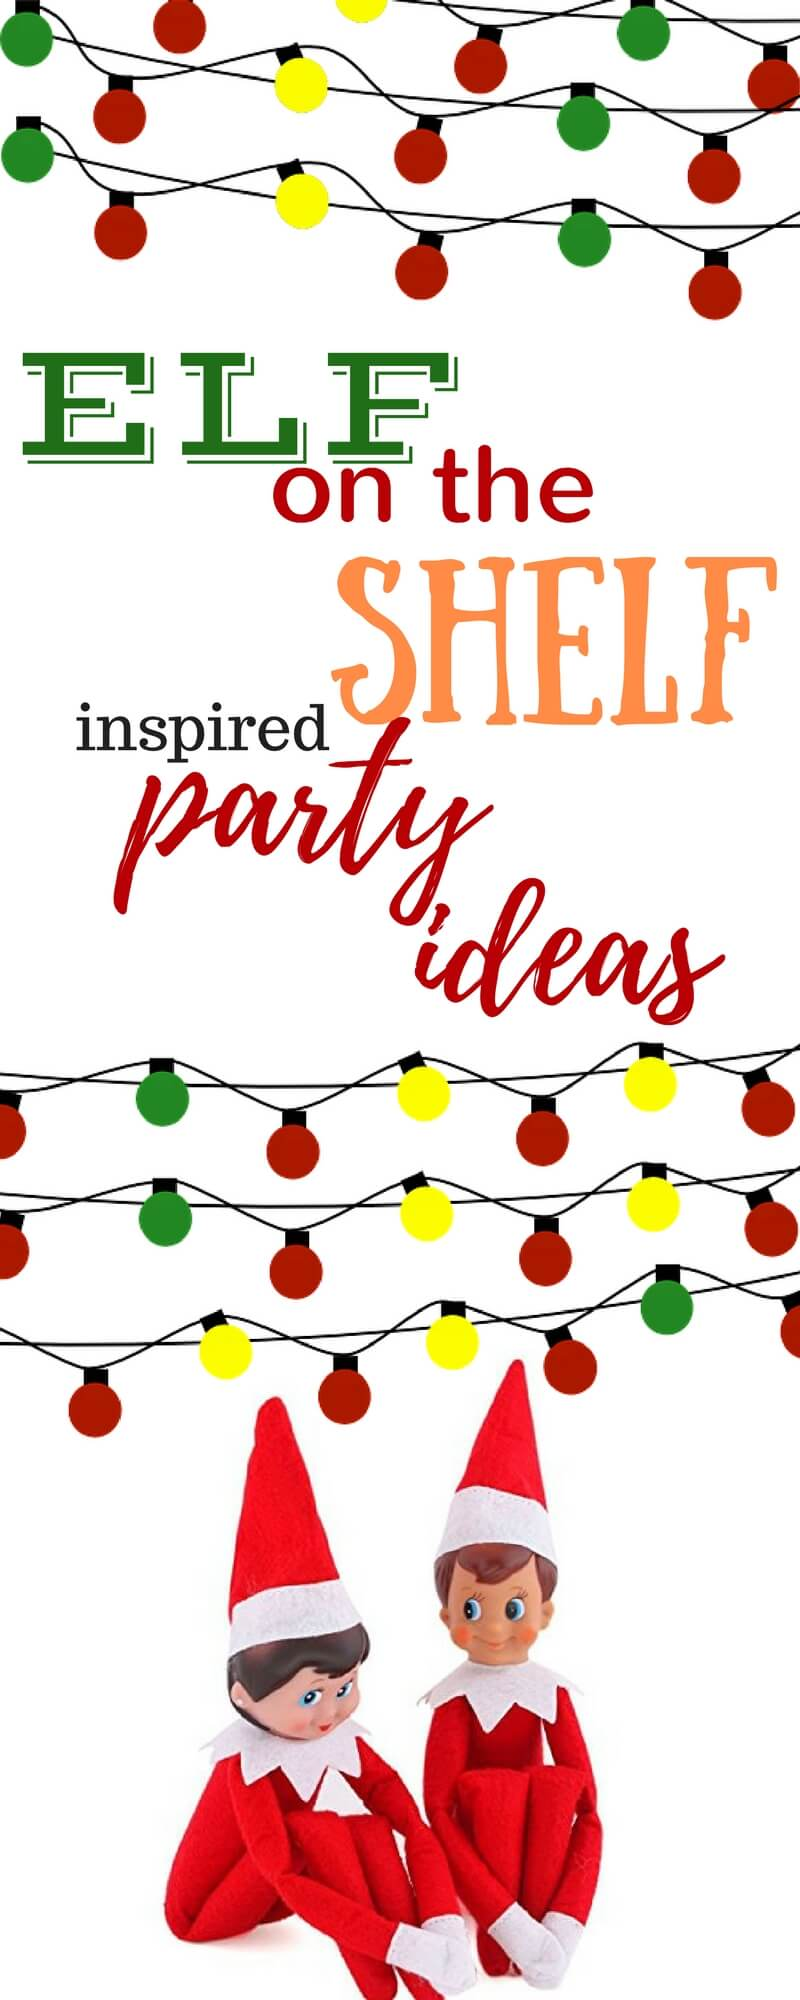 Nov 21, · Elf on the Shelf is the established option. Since it debuted in , more than 11 million have been sold, according to CNN. It was created by twin sisters Chanda Bell and Christa Pitts and their.